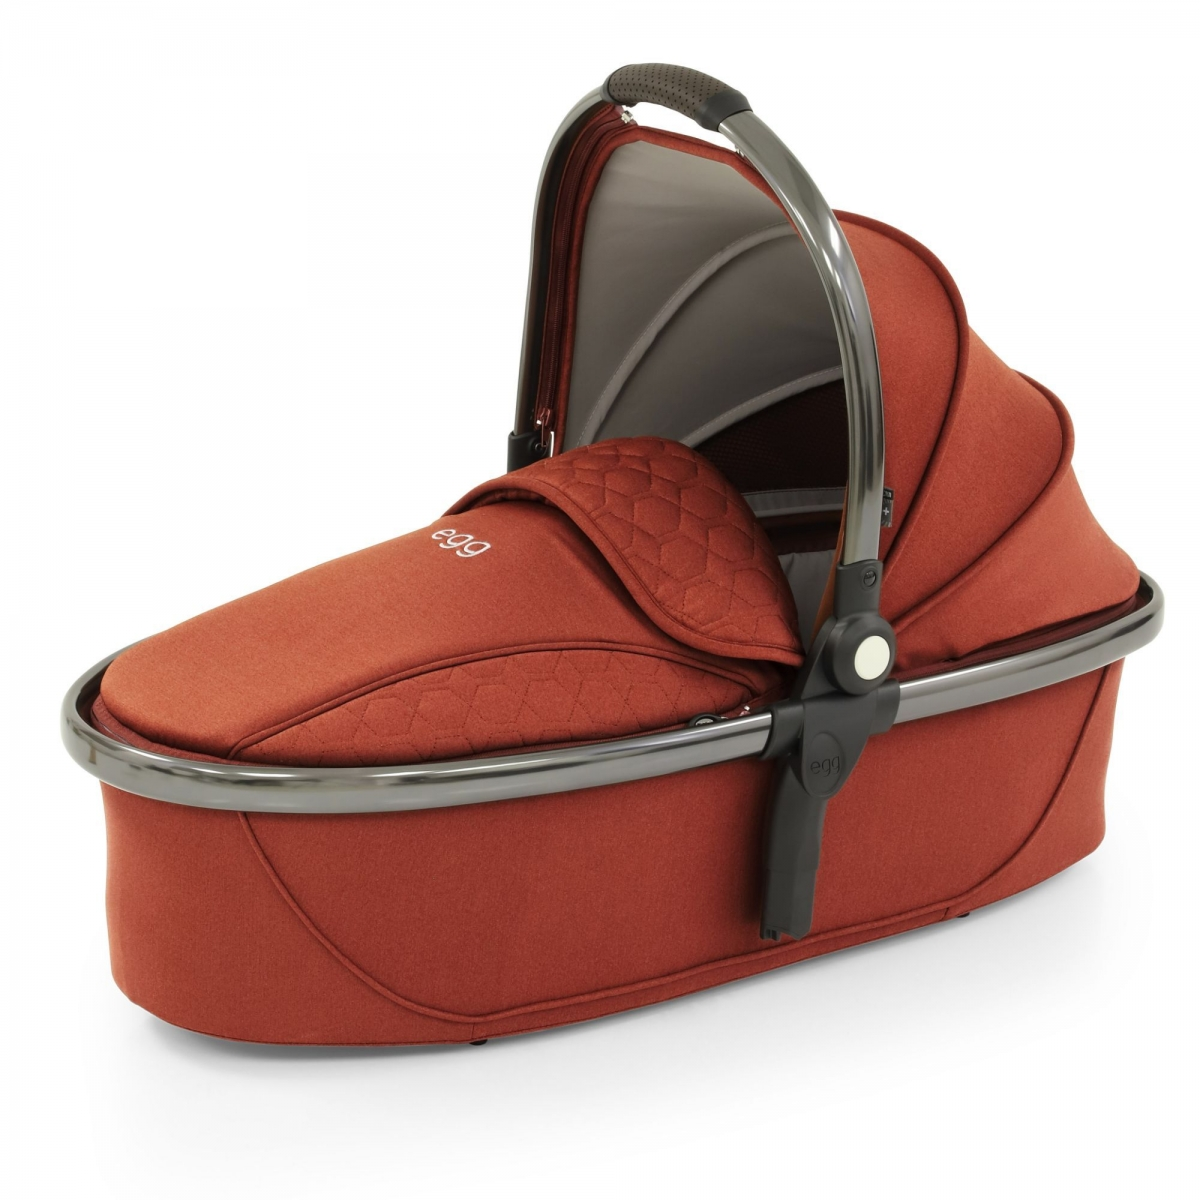 egg® 2 Carrycot-Paprika (NEW)